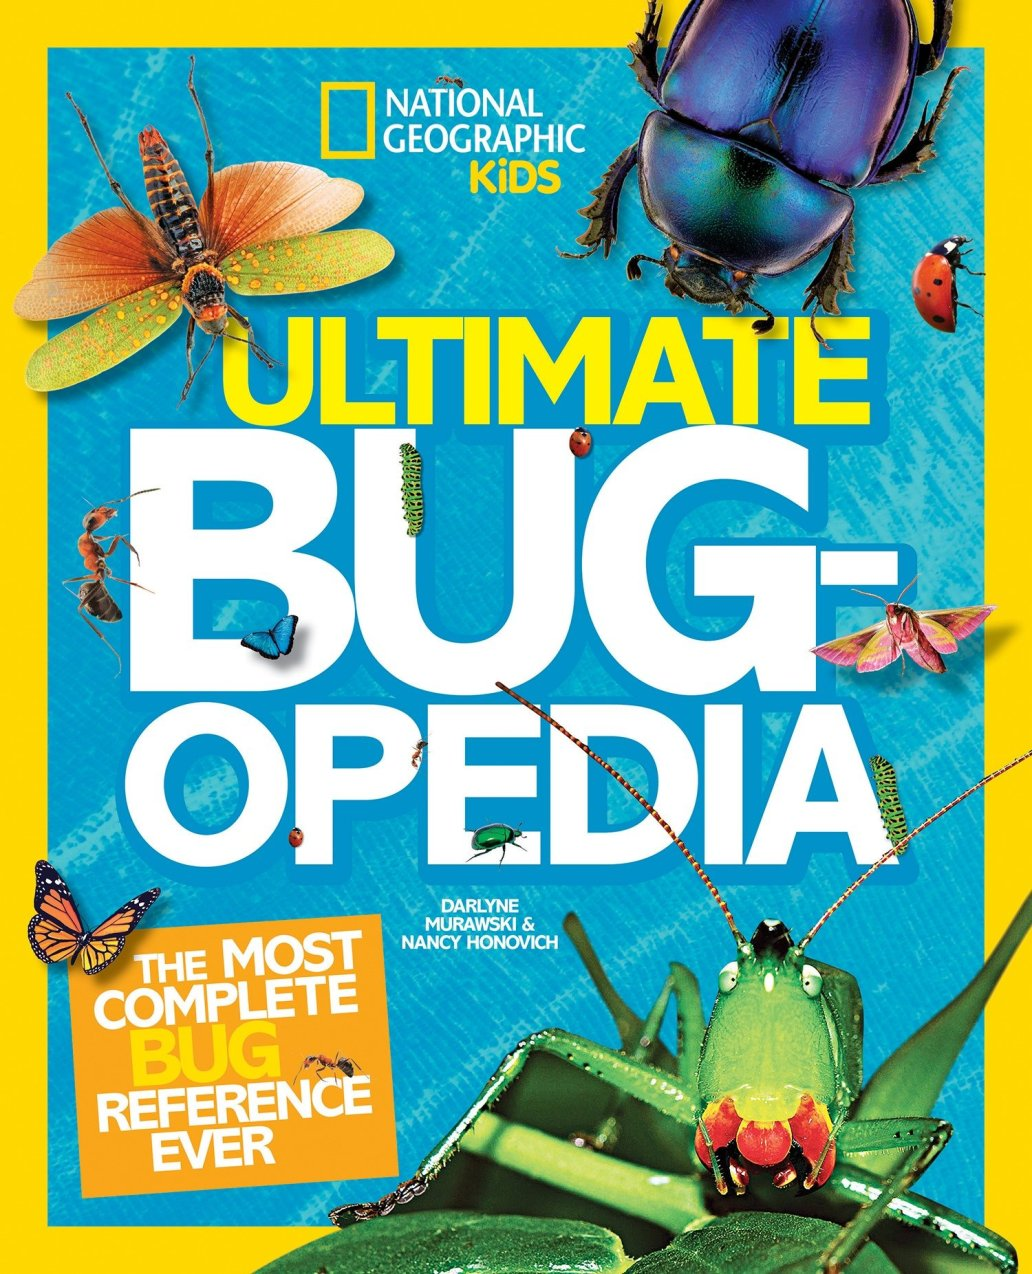 Ultimate Bugopedia